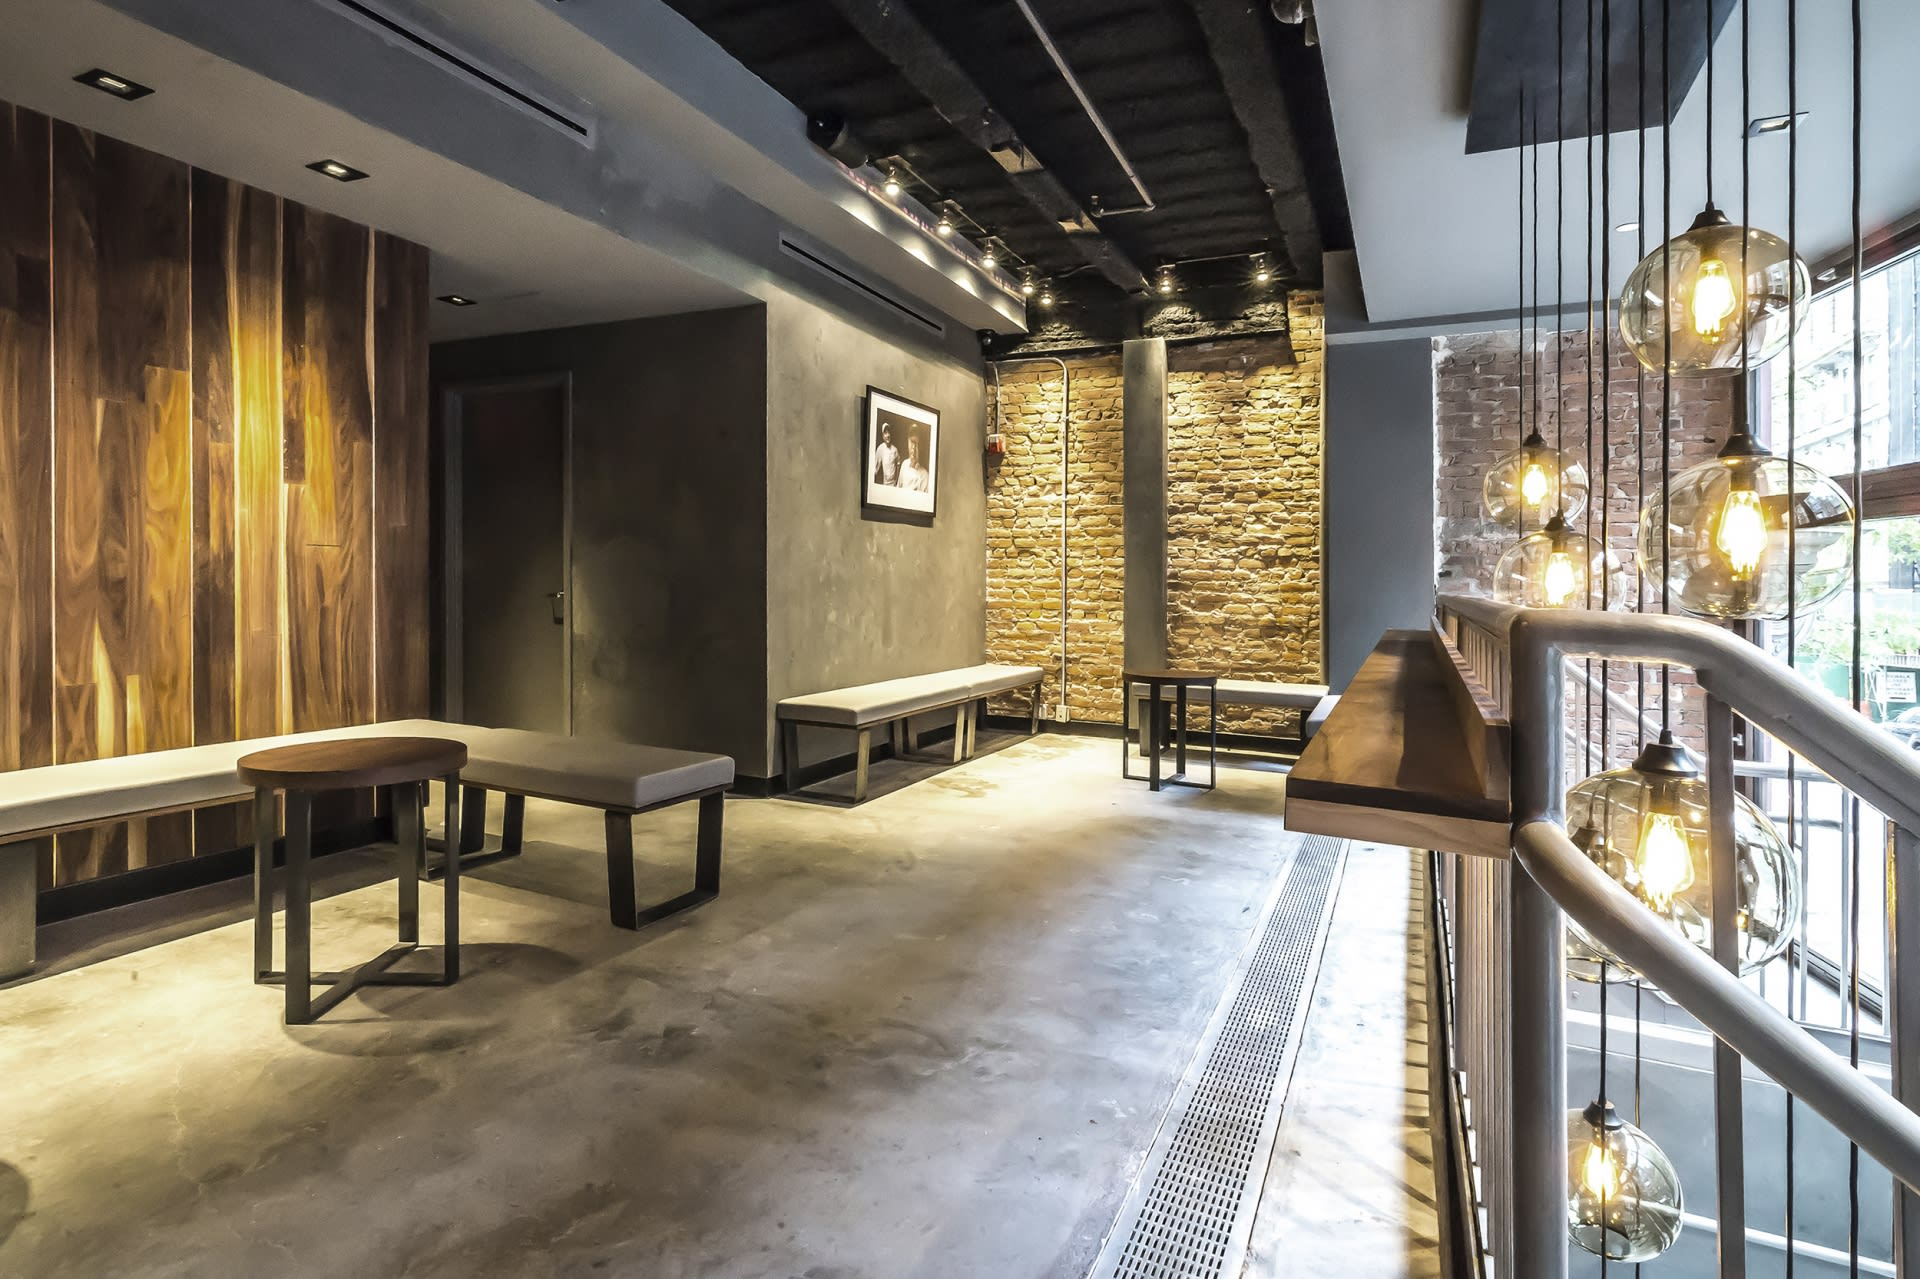 Interior Design by Marmol Radziner seen at SUGARFISH by sushi nozawa, East 20th Street, New York - Interior Design